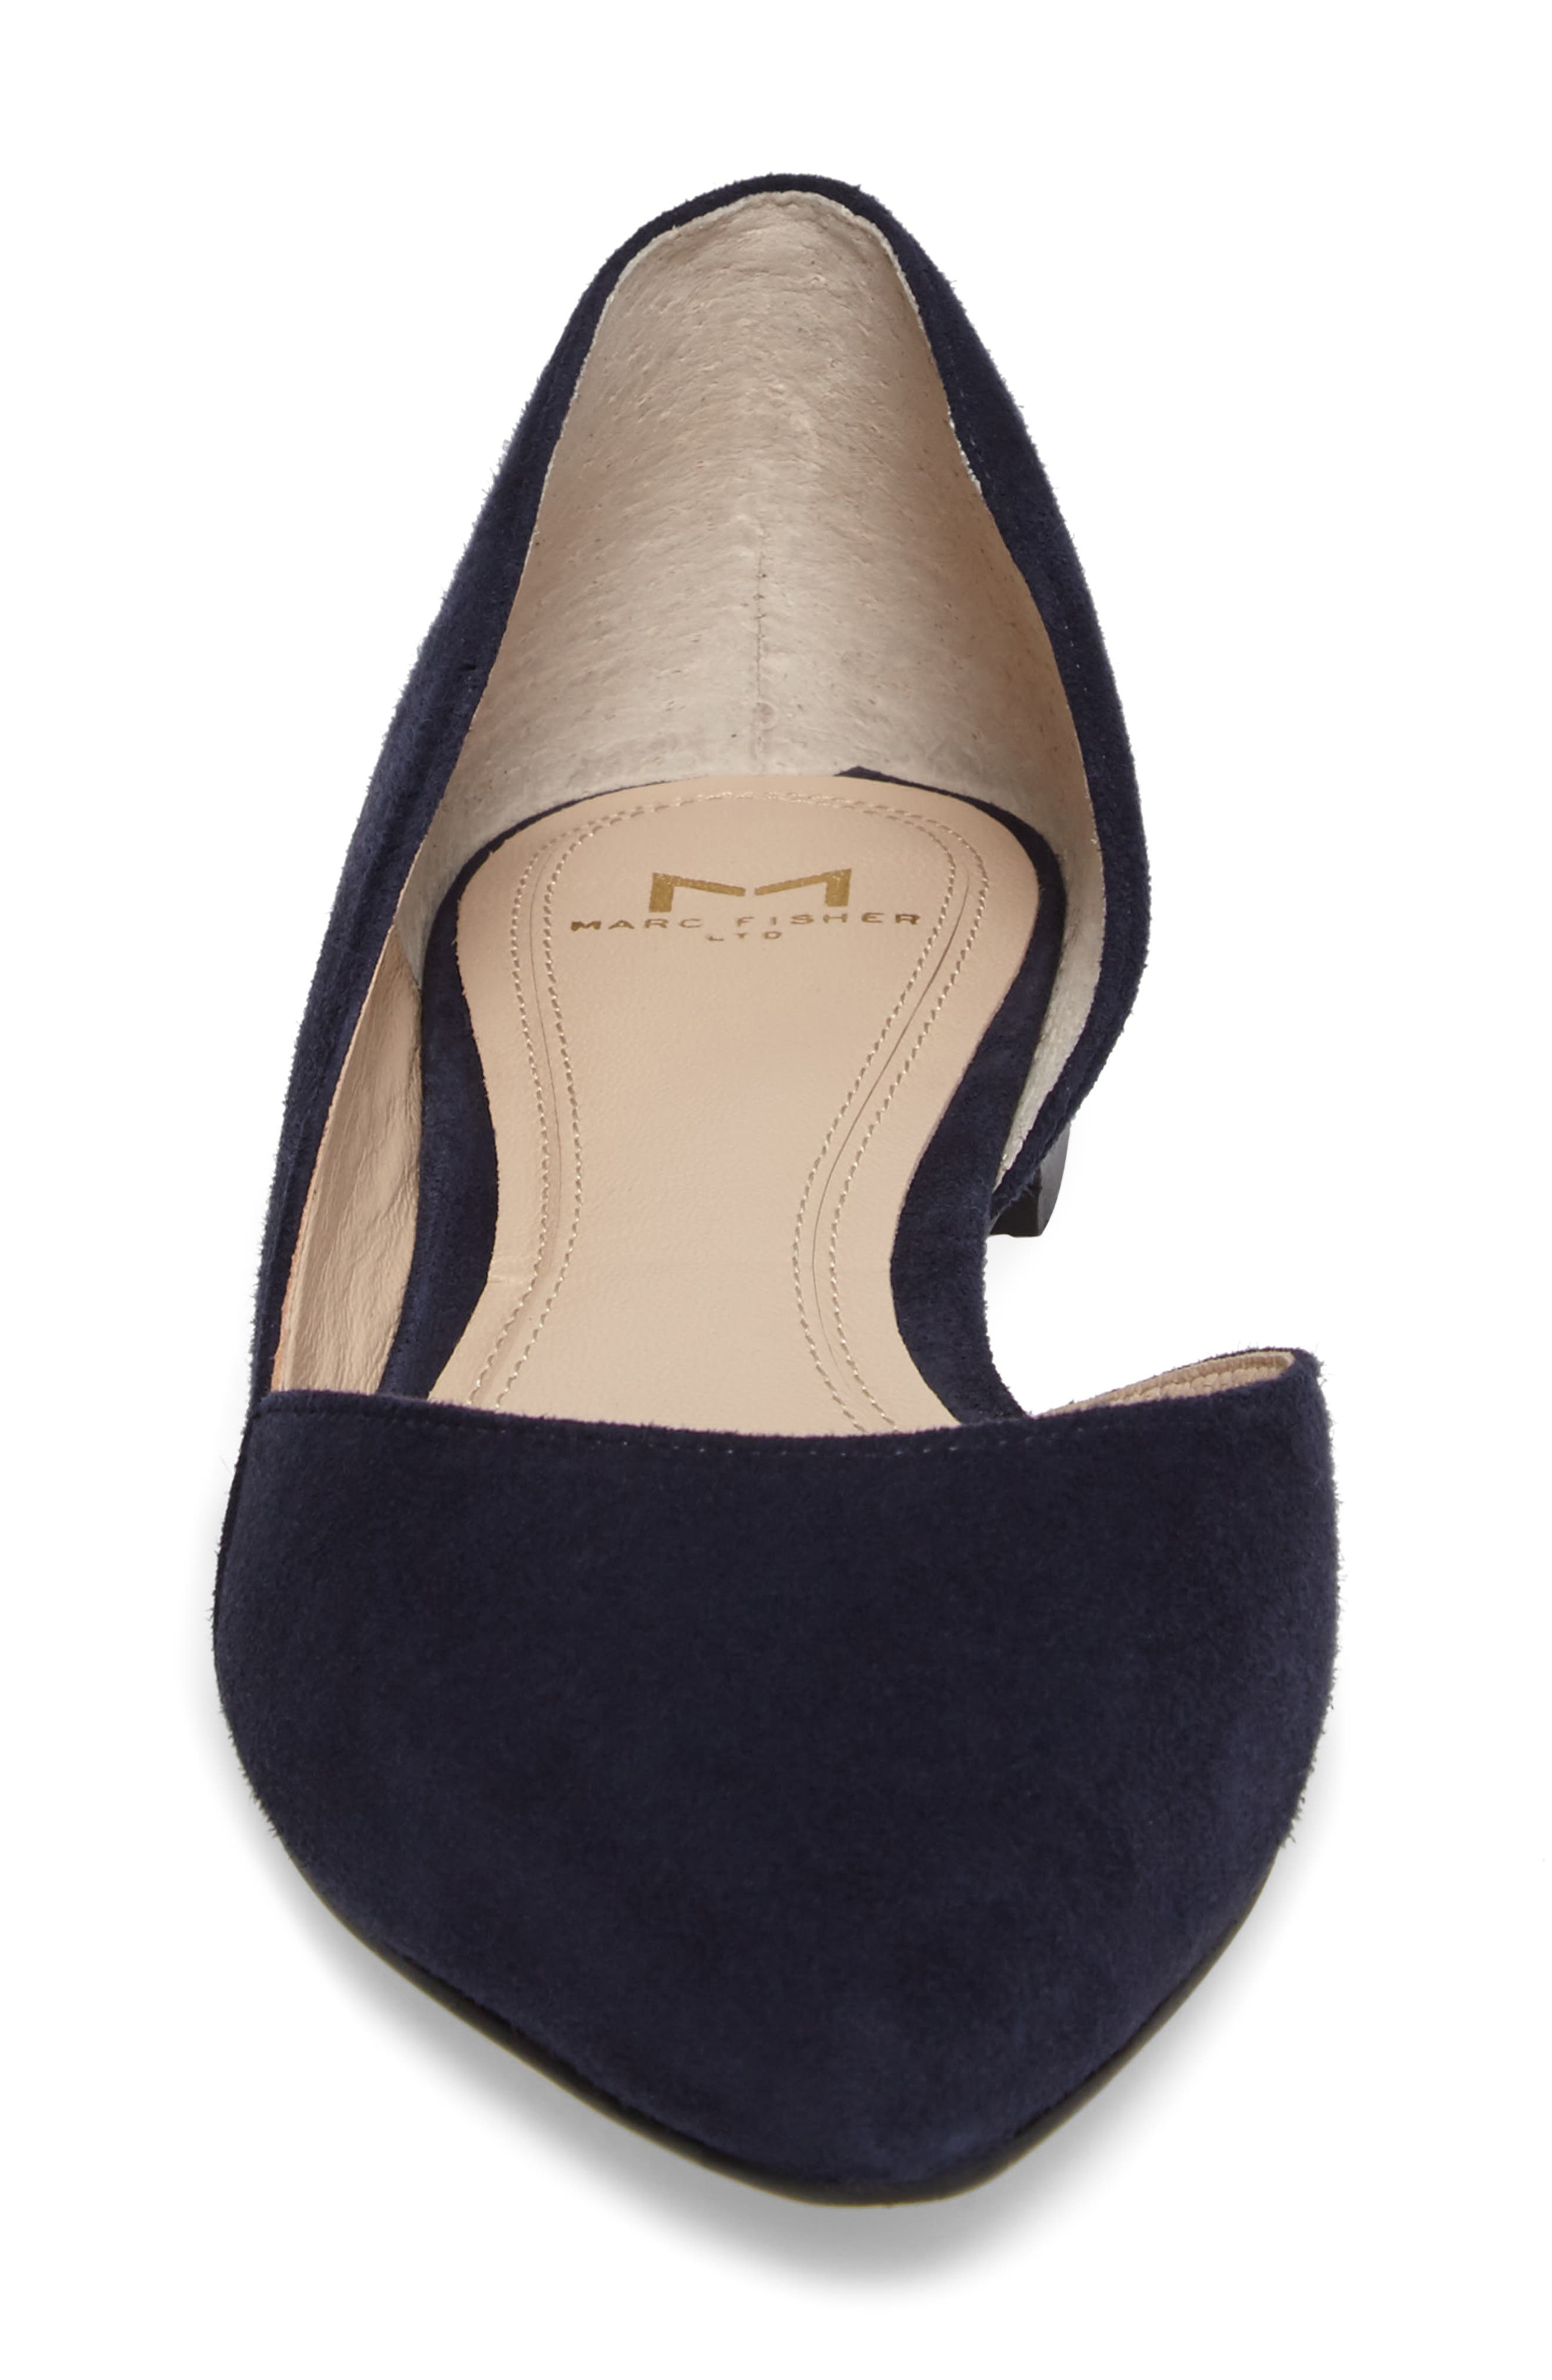 'Sunny' Half d'Orsay Flat,                             Alternate thumbnail 4, color,                             Bold Blue Suede